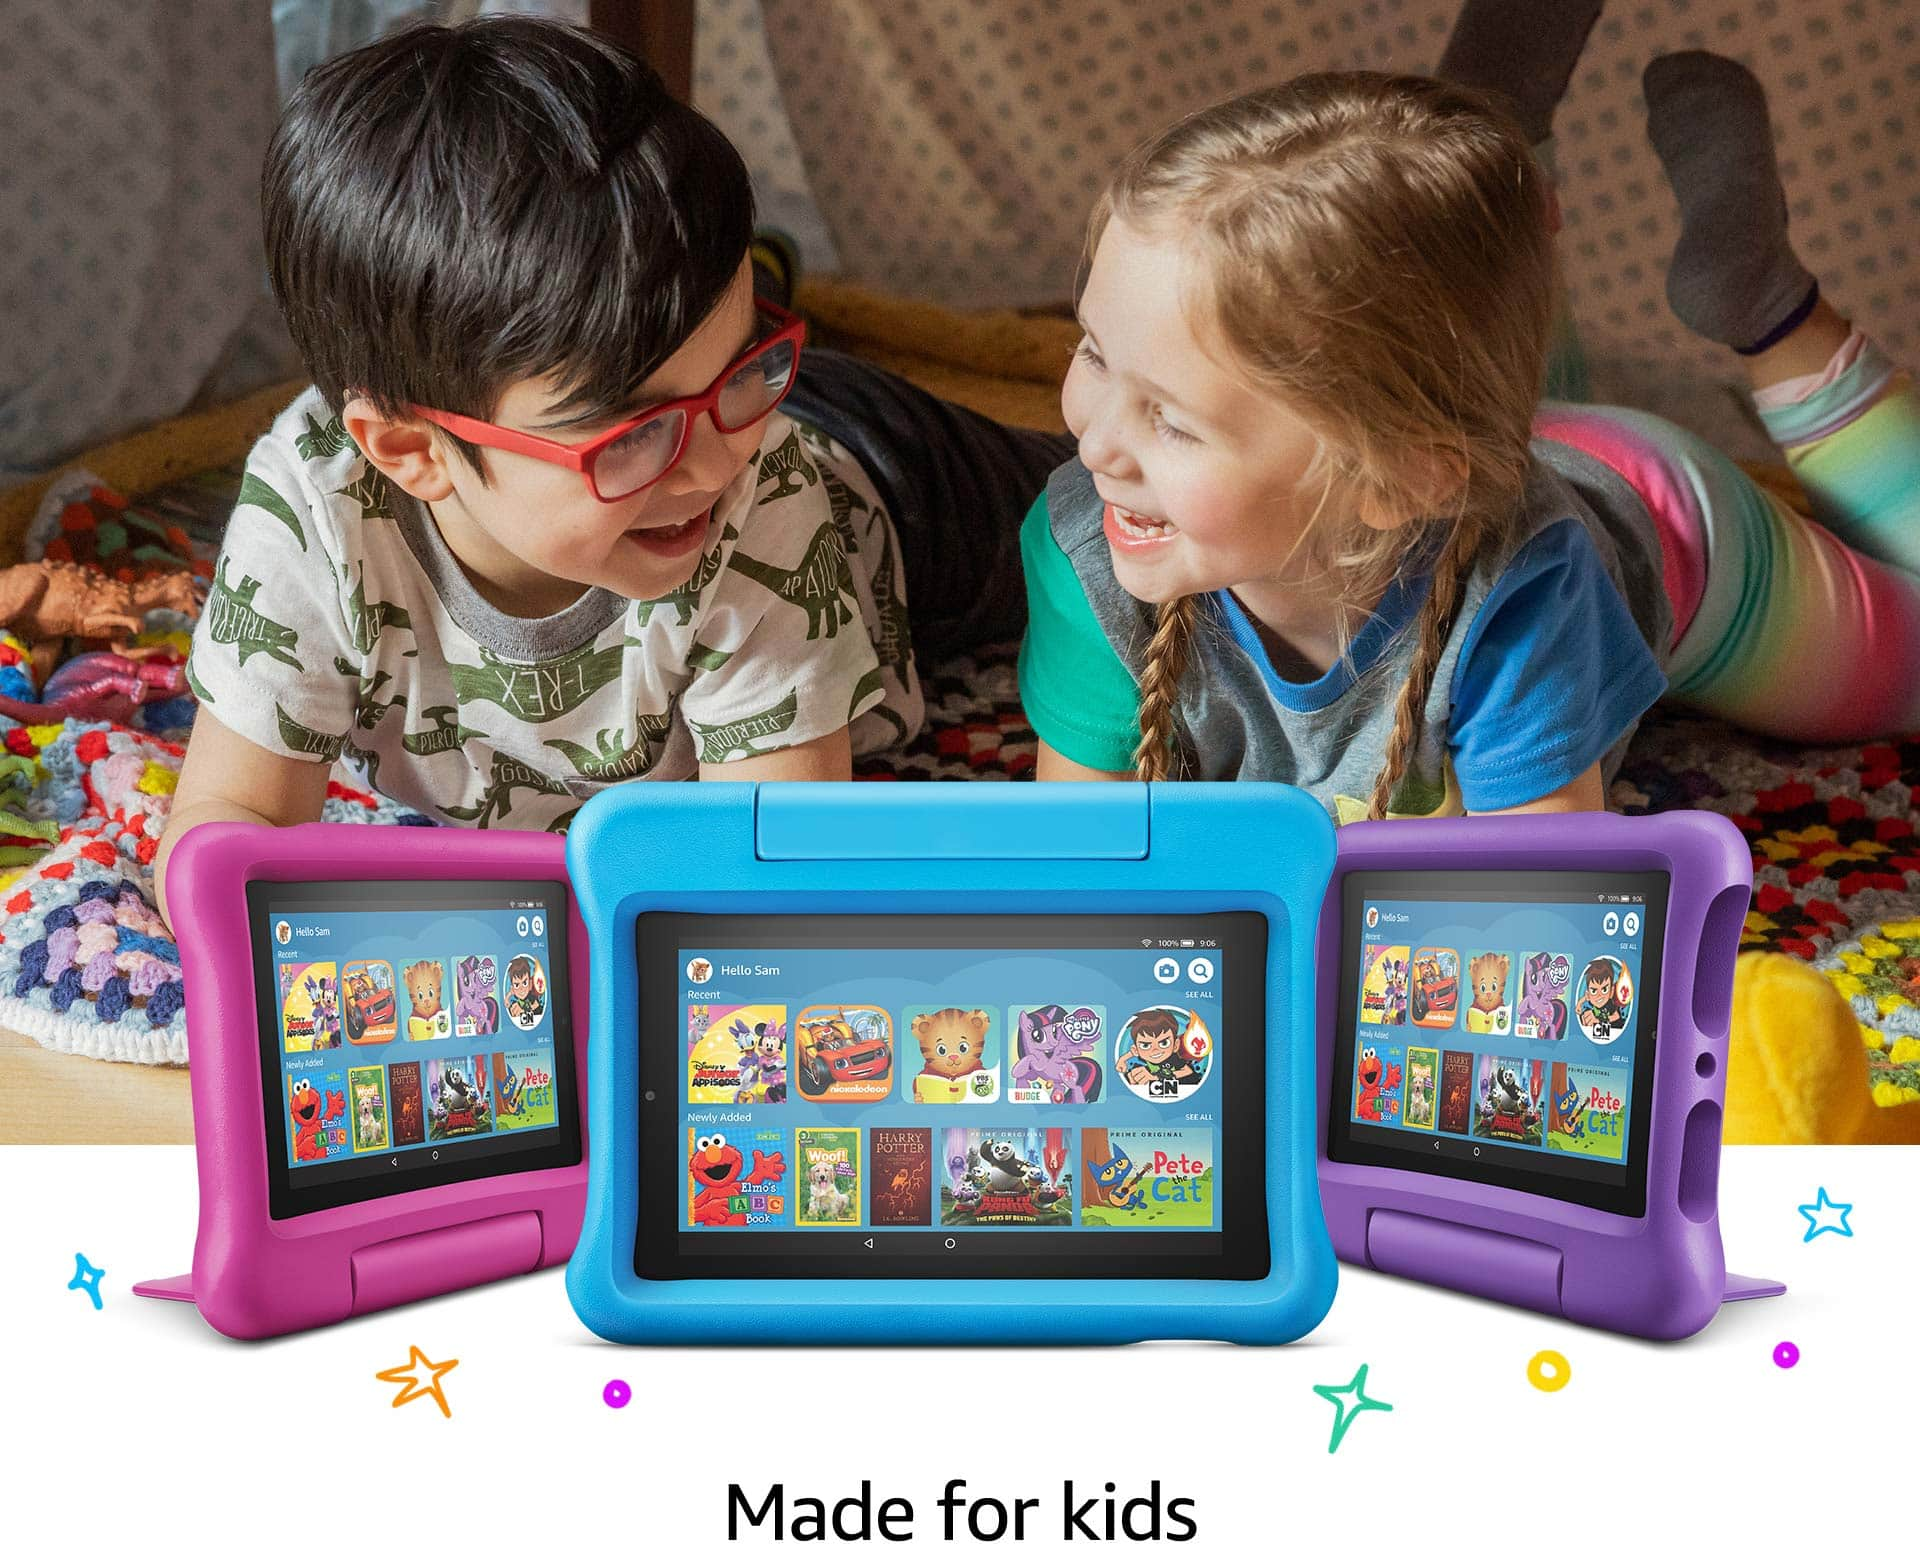 """Fire 7 Kids Tablet, 7"""" Display, 16 GB, Blue Kid-Proof Case for $59.99"""